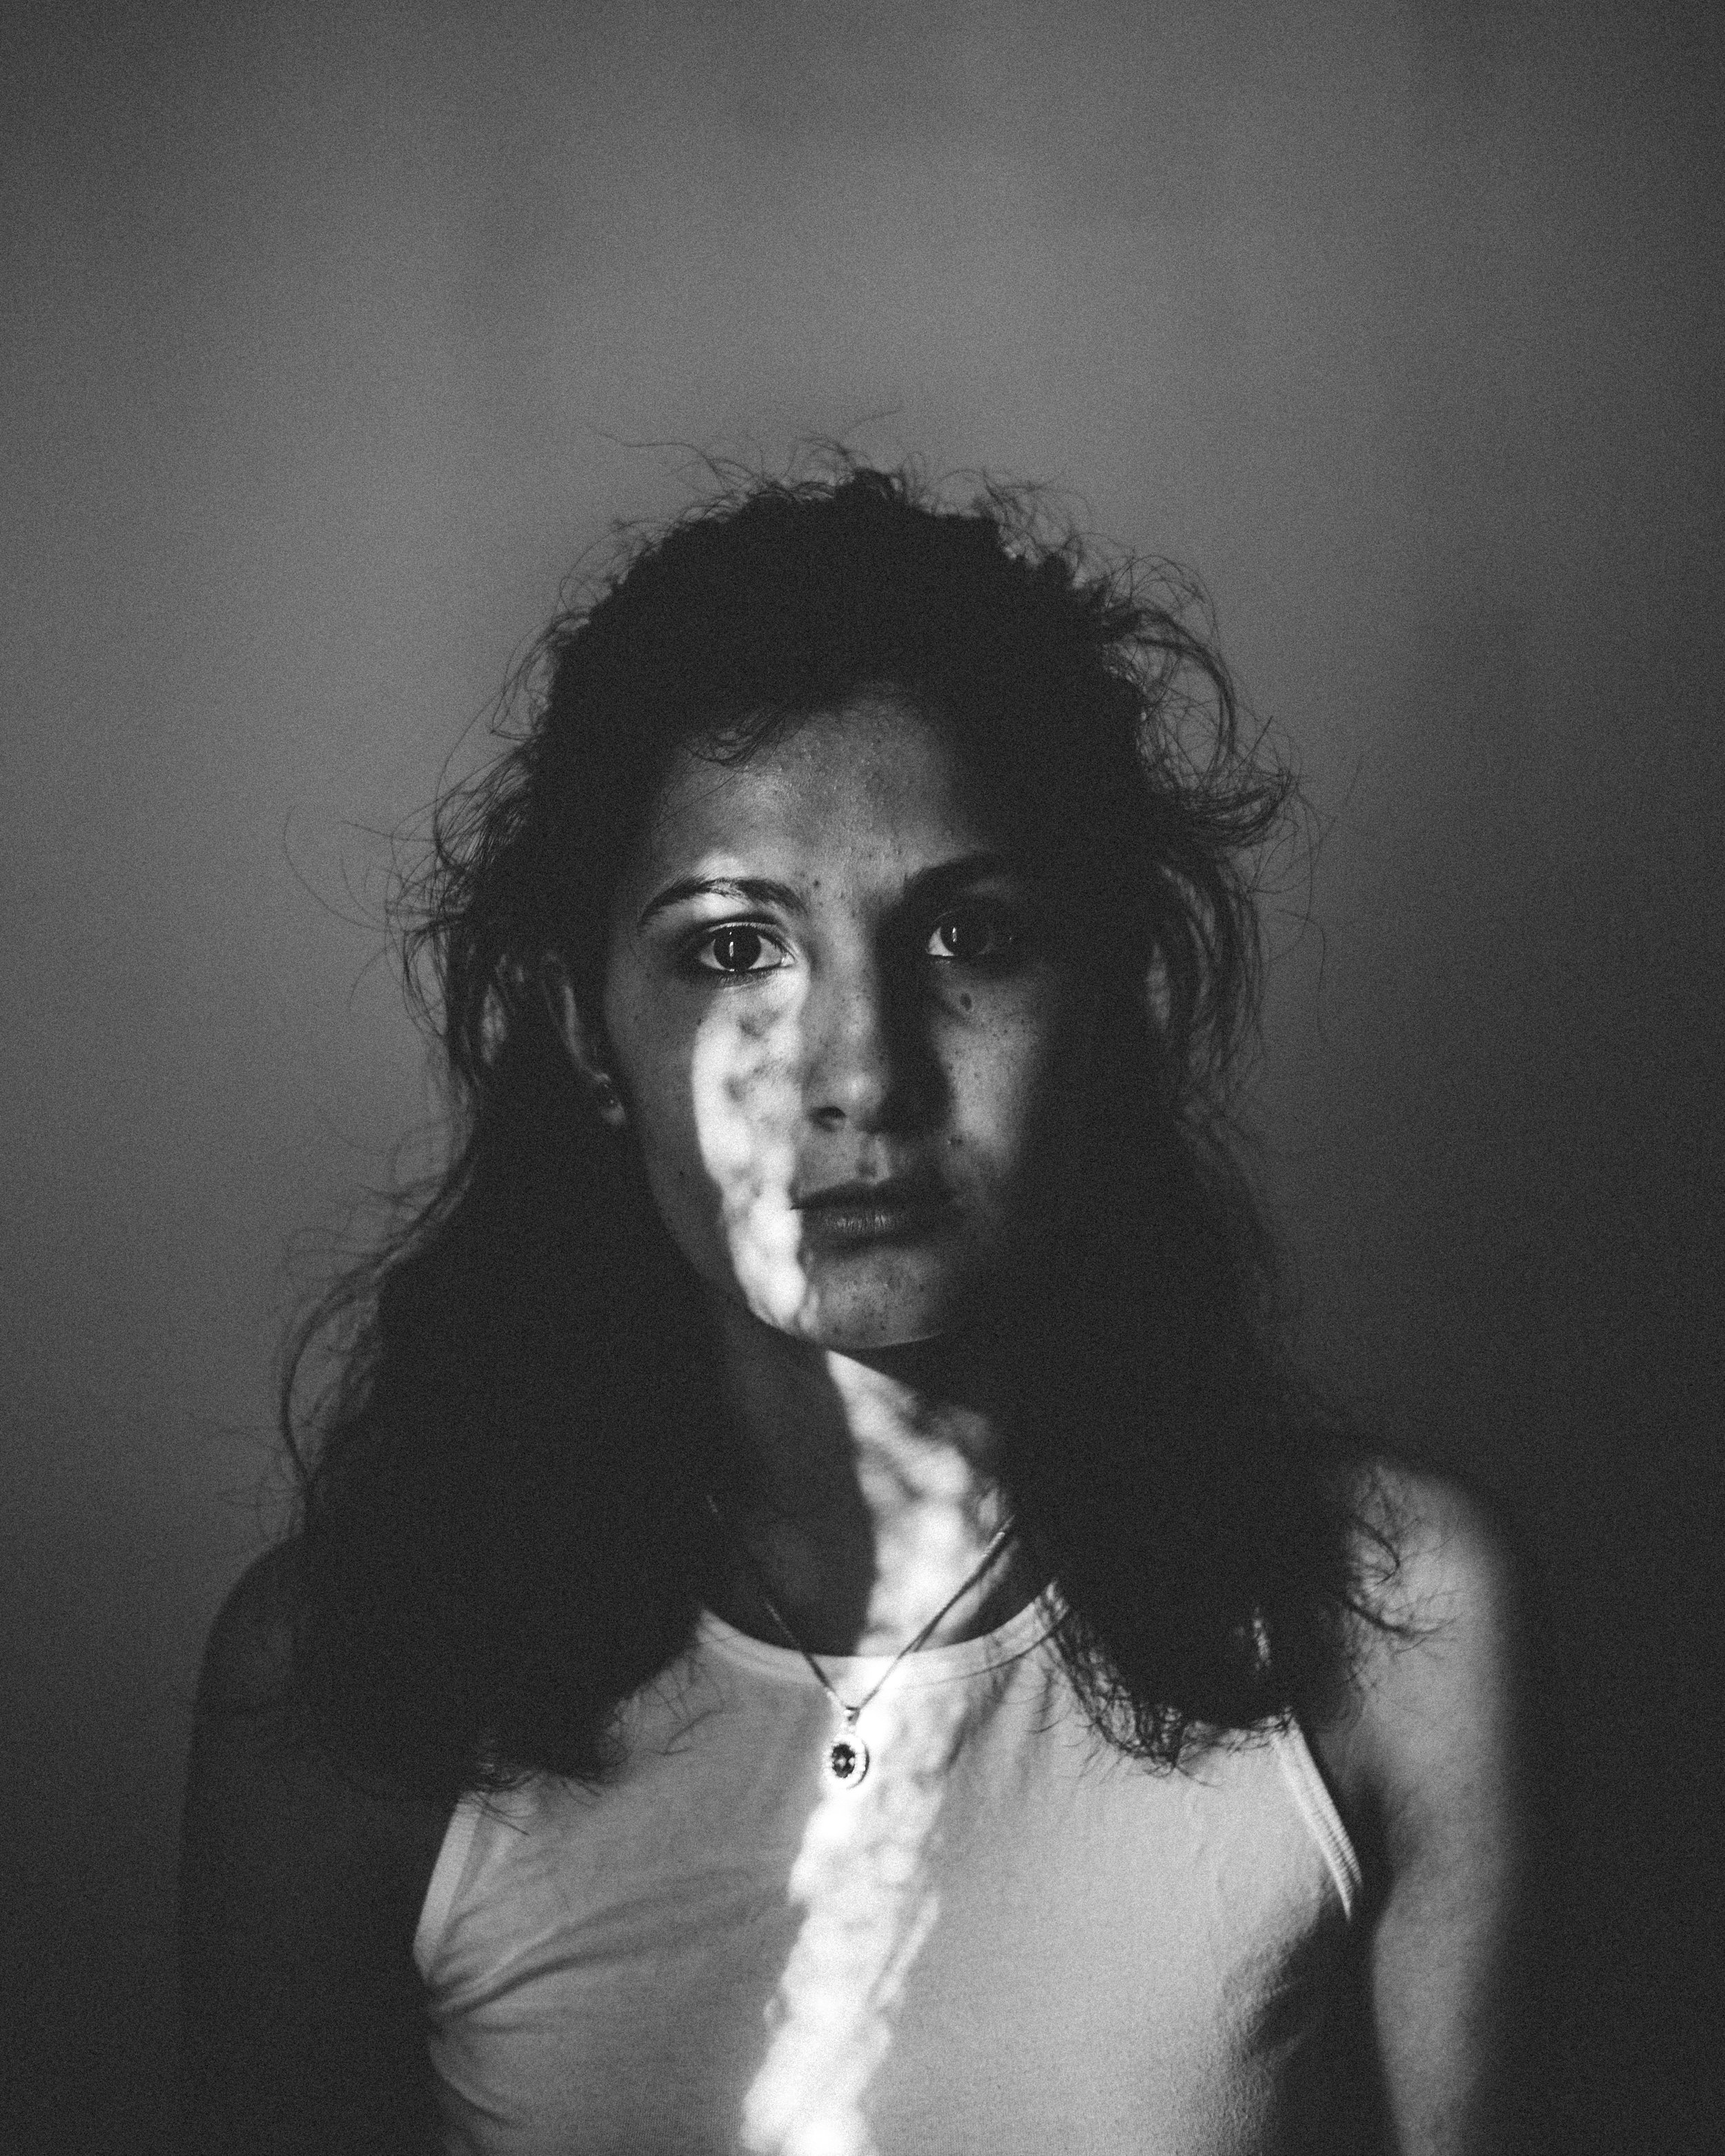 """""""Incidents, words and actions that the logical part of my brain would dismiss, twist themselves around my mind in a death grip, refusing to let go until I lash out against other people or myself."""" - Words by Malvika Padin"""